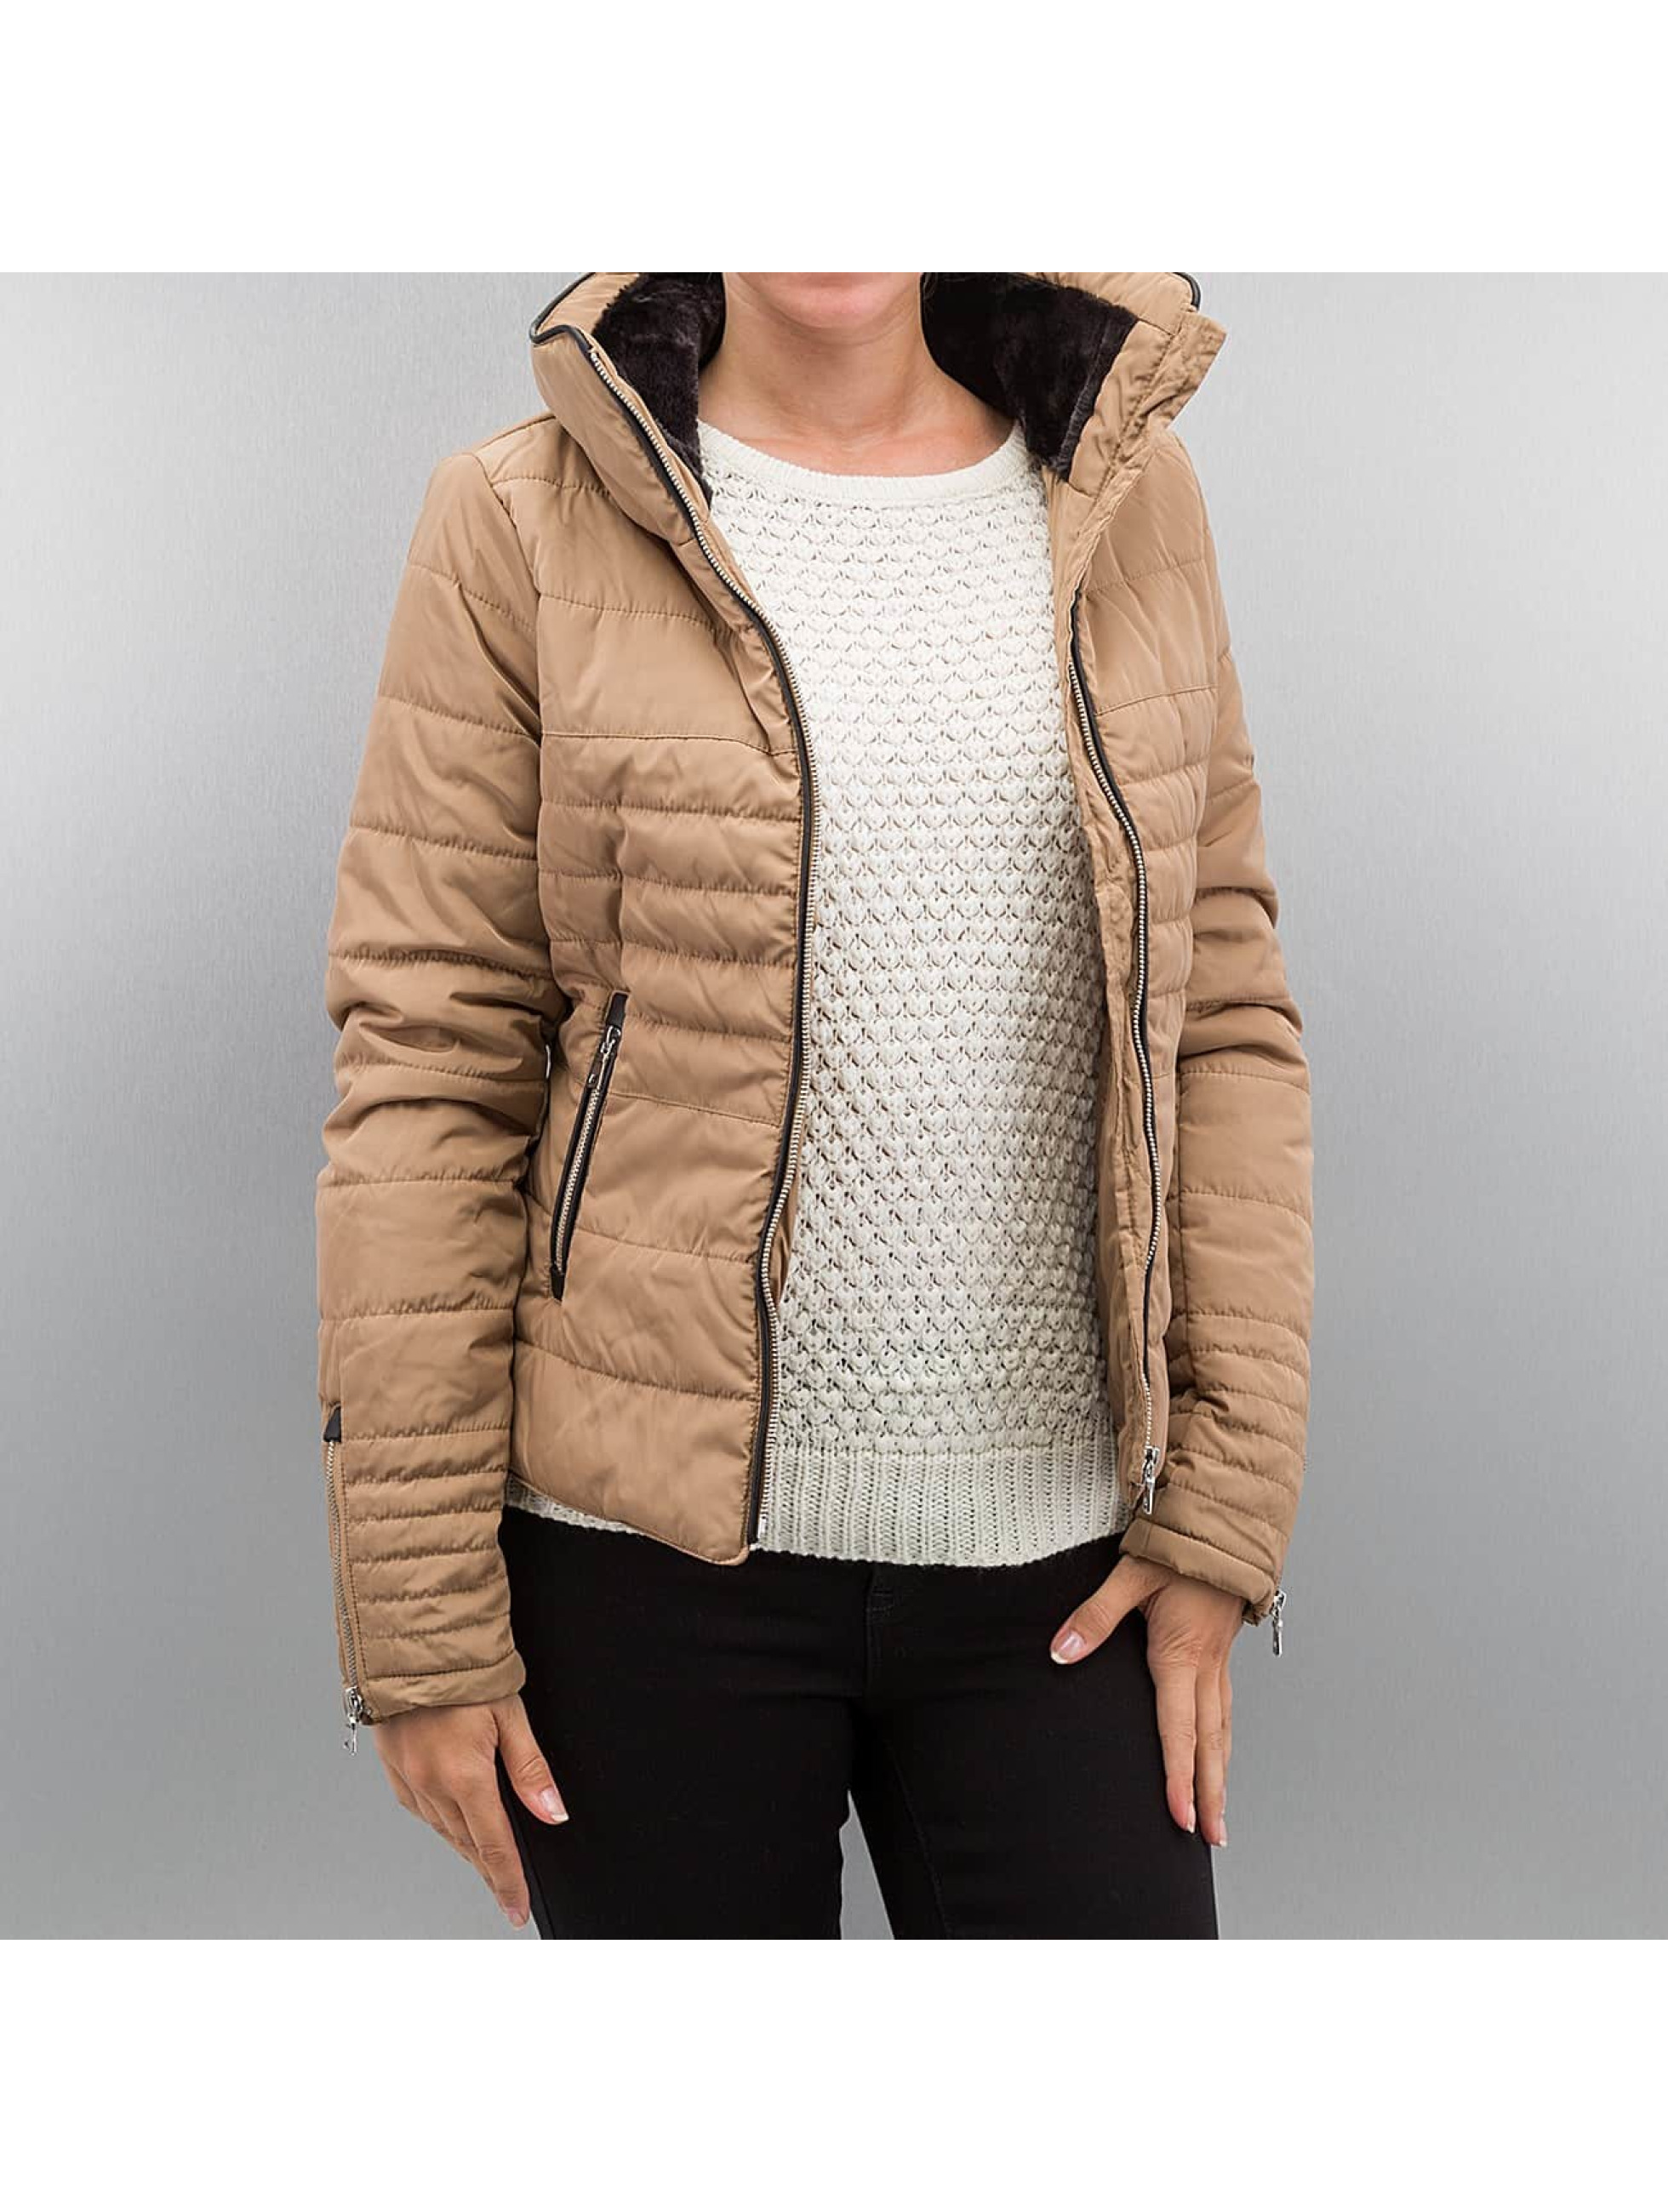 Vero Moda Transitional Jackets vmLulu beige